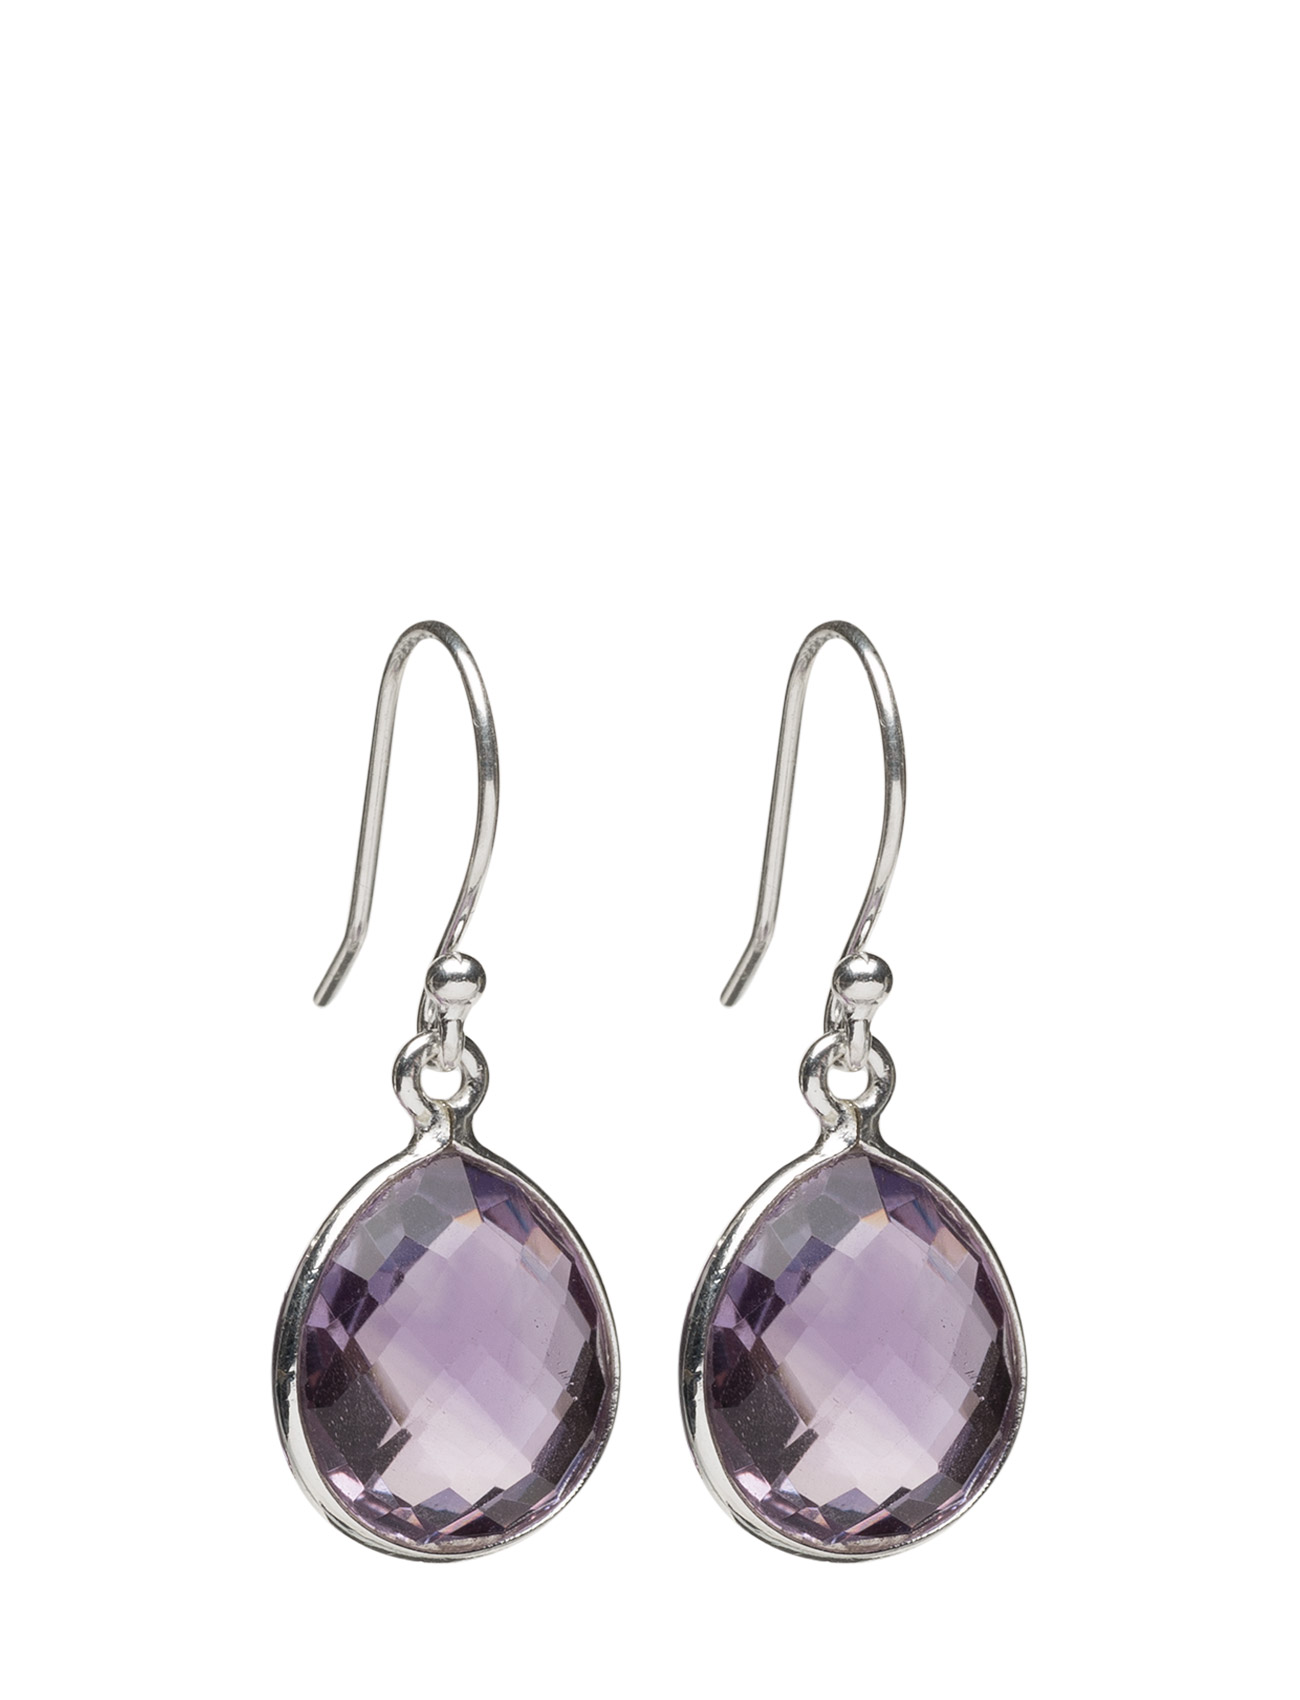 Raindrop Earrings Silver Amethyst Syster P Smykker til Damer i Sølv